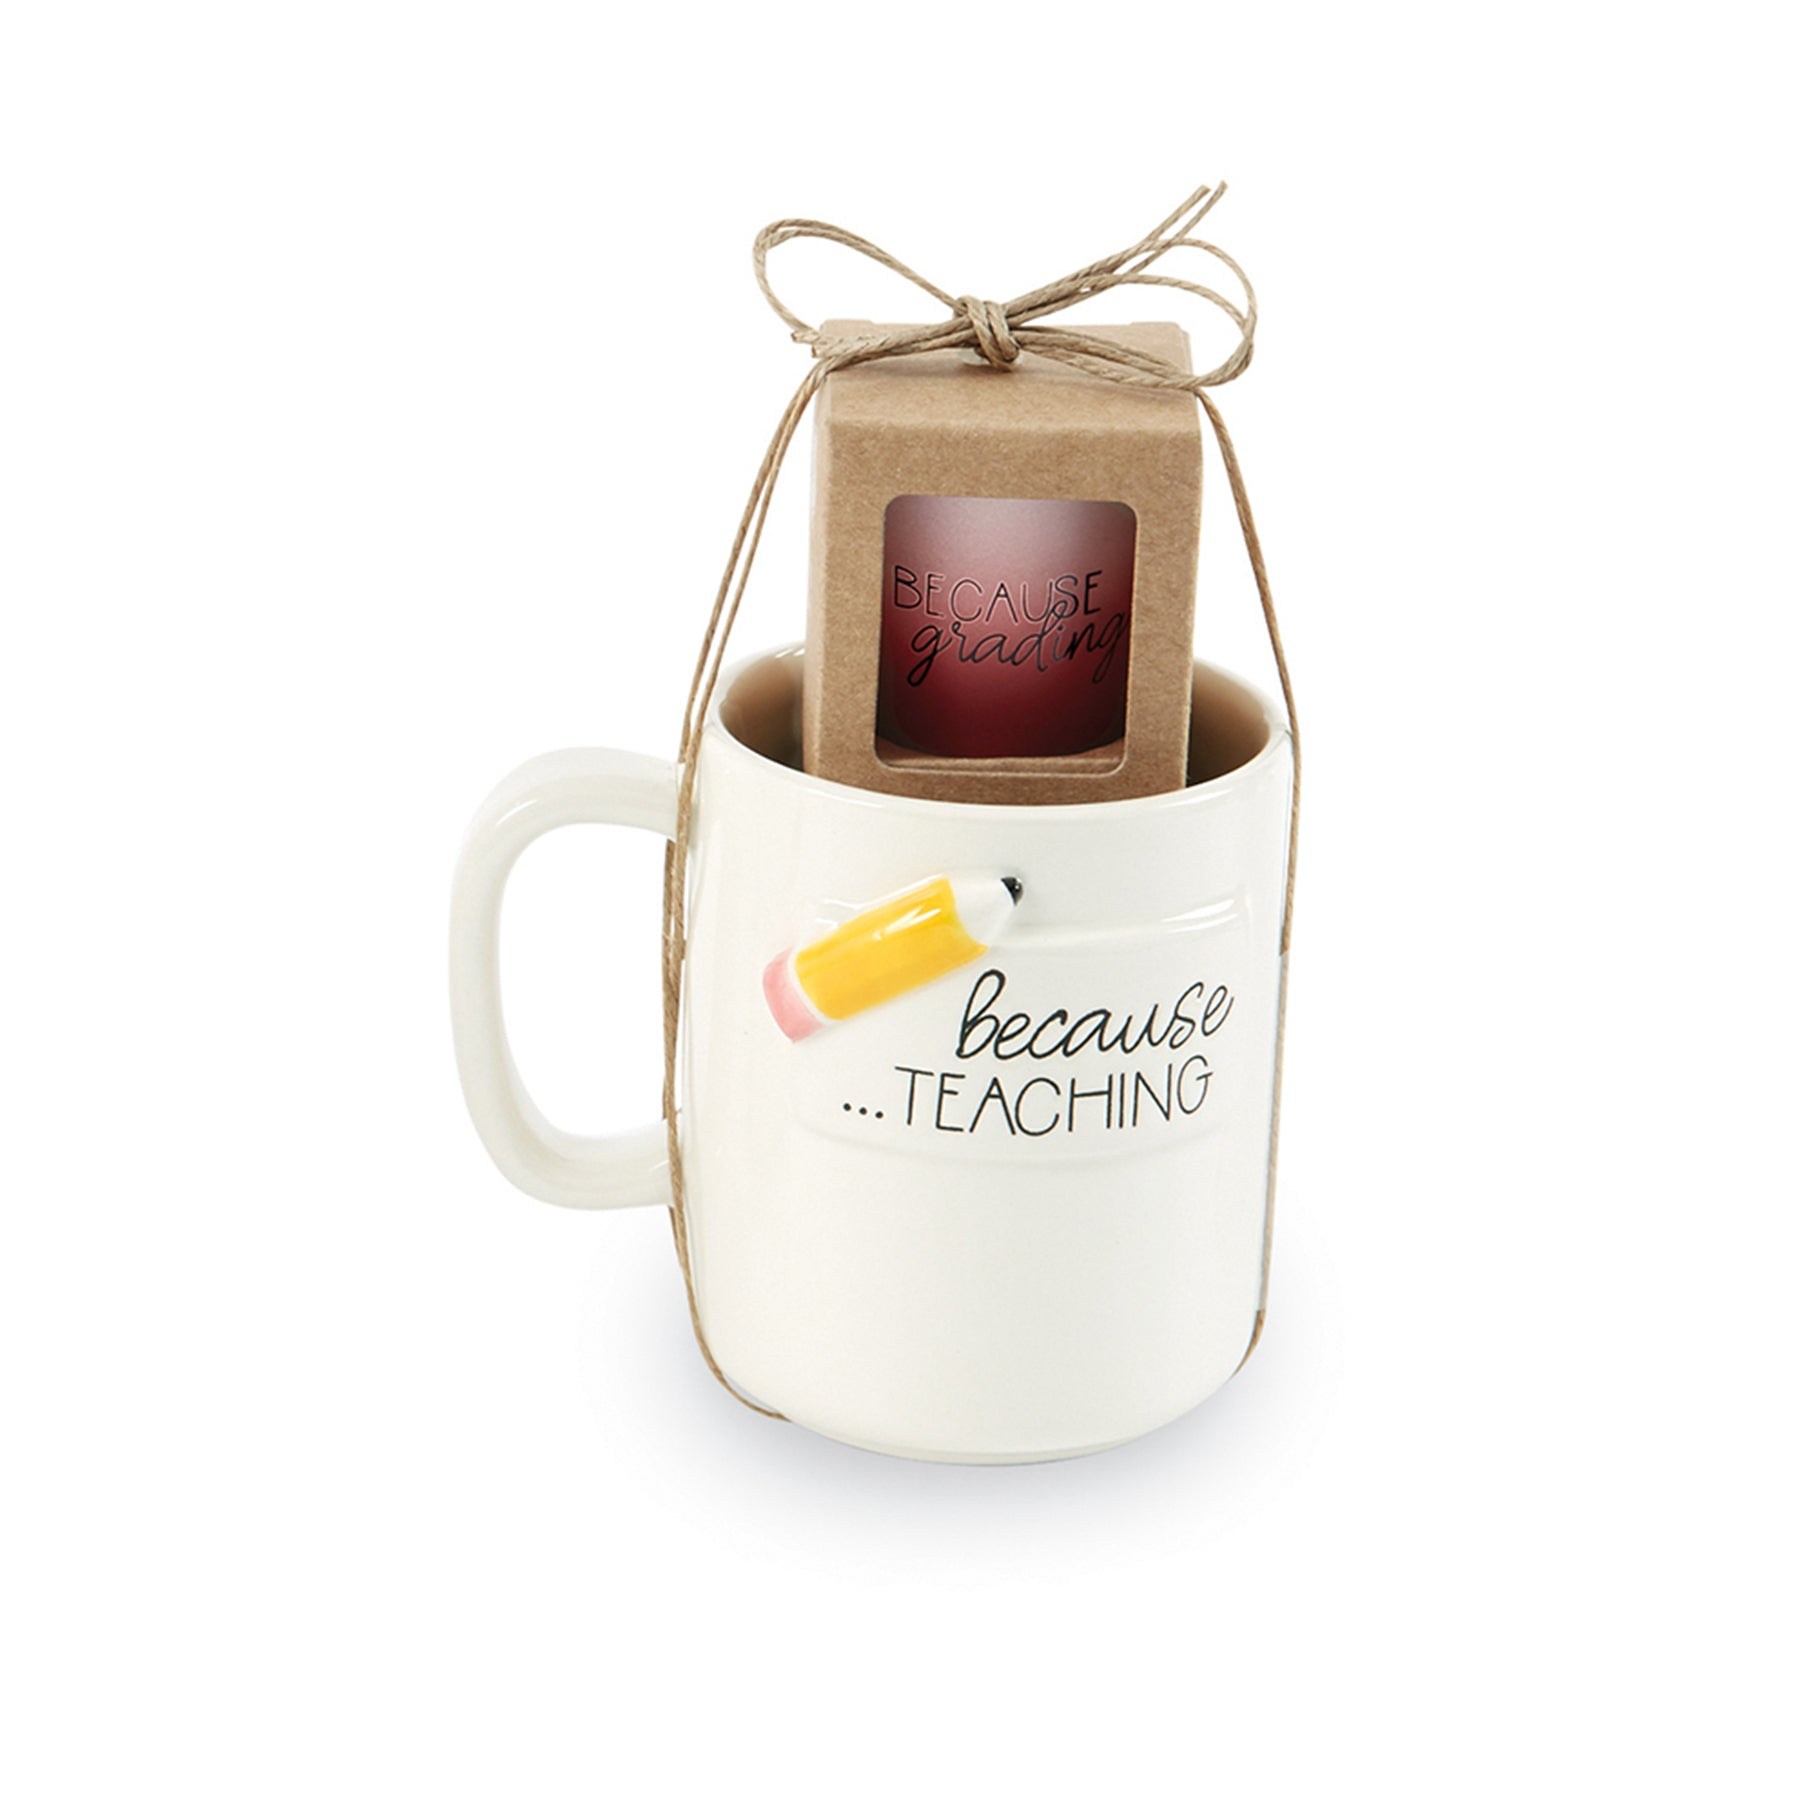 Pencil Teacher Coffee Mug & Shot Glass Set